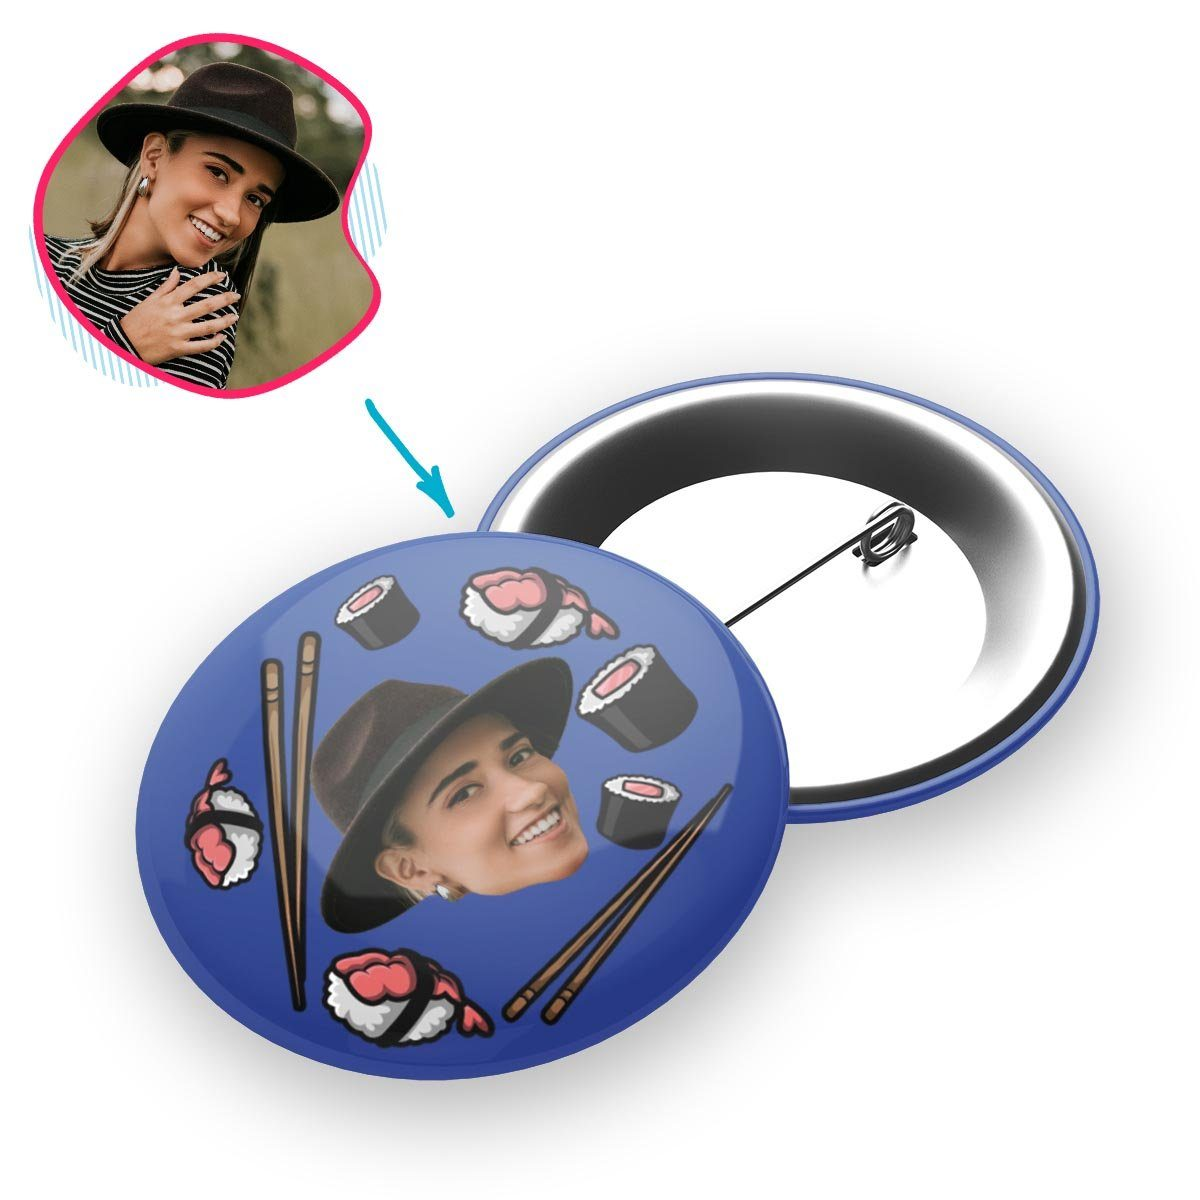 darkblue Sushi pin personalized with photo of face printed on it